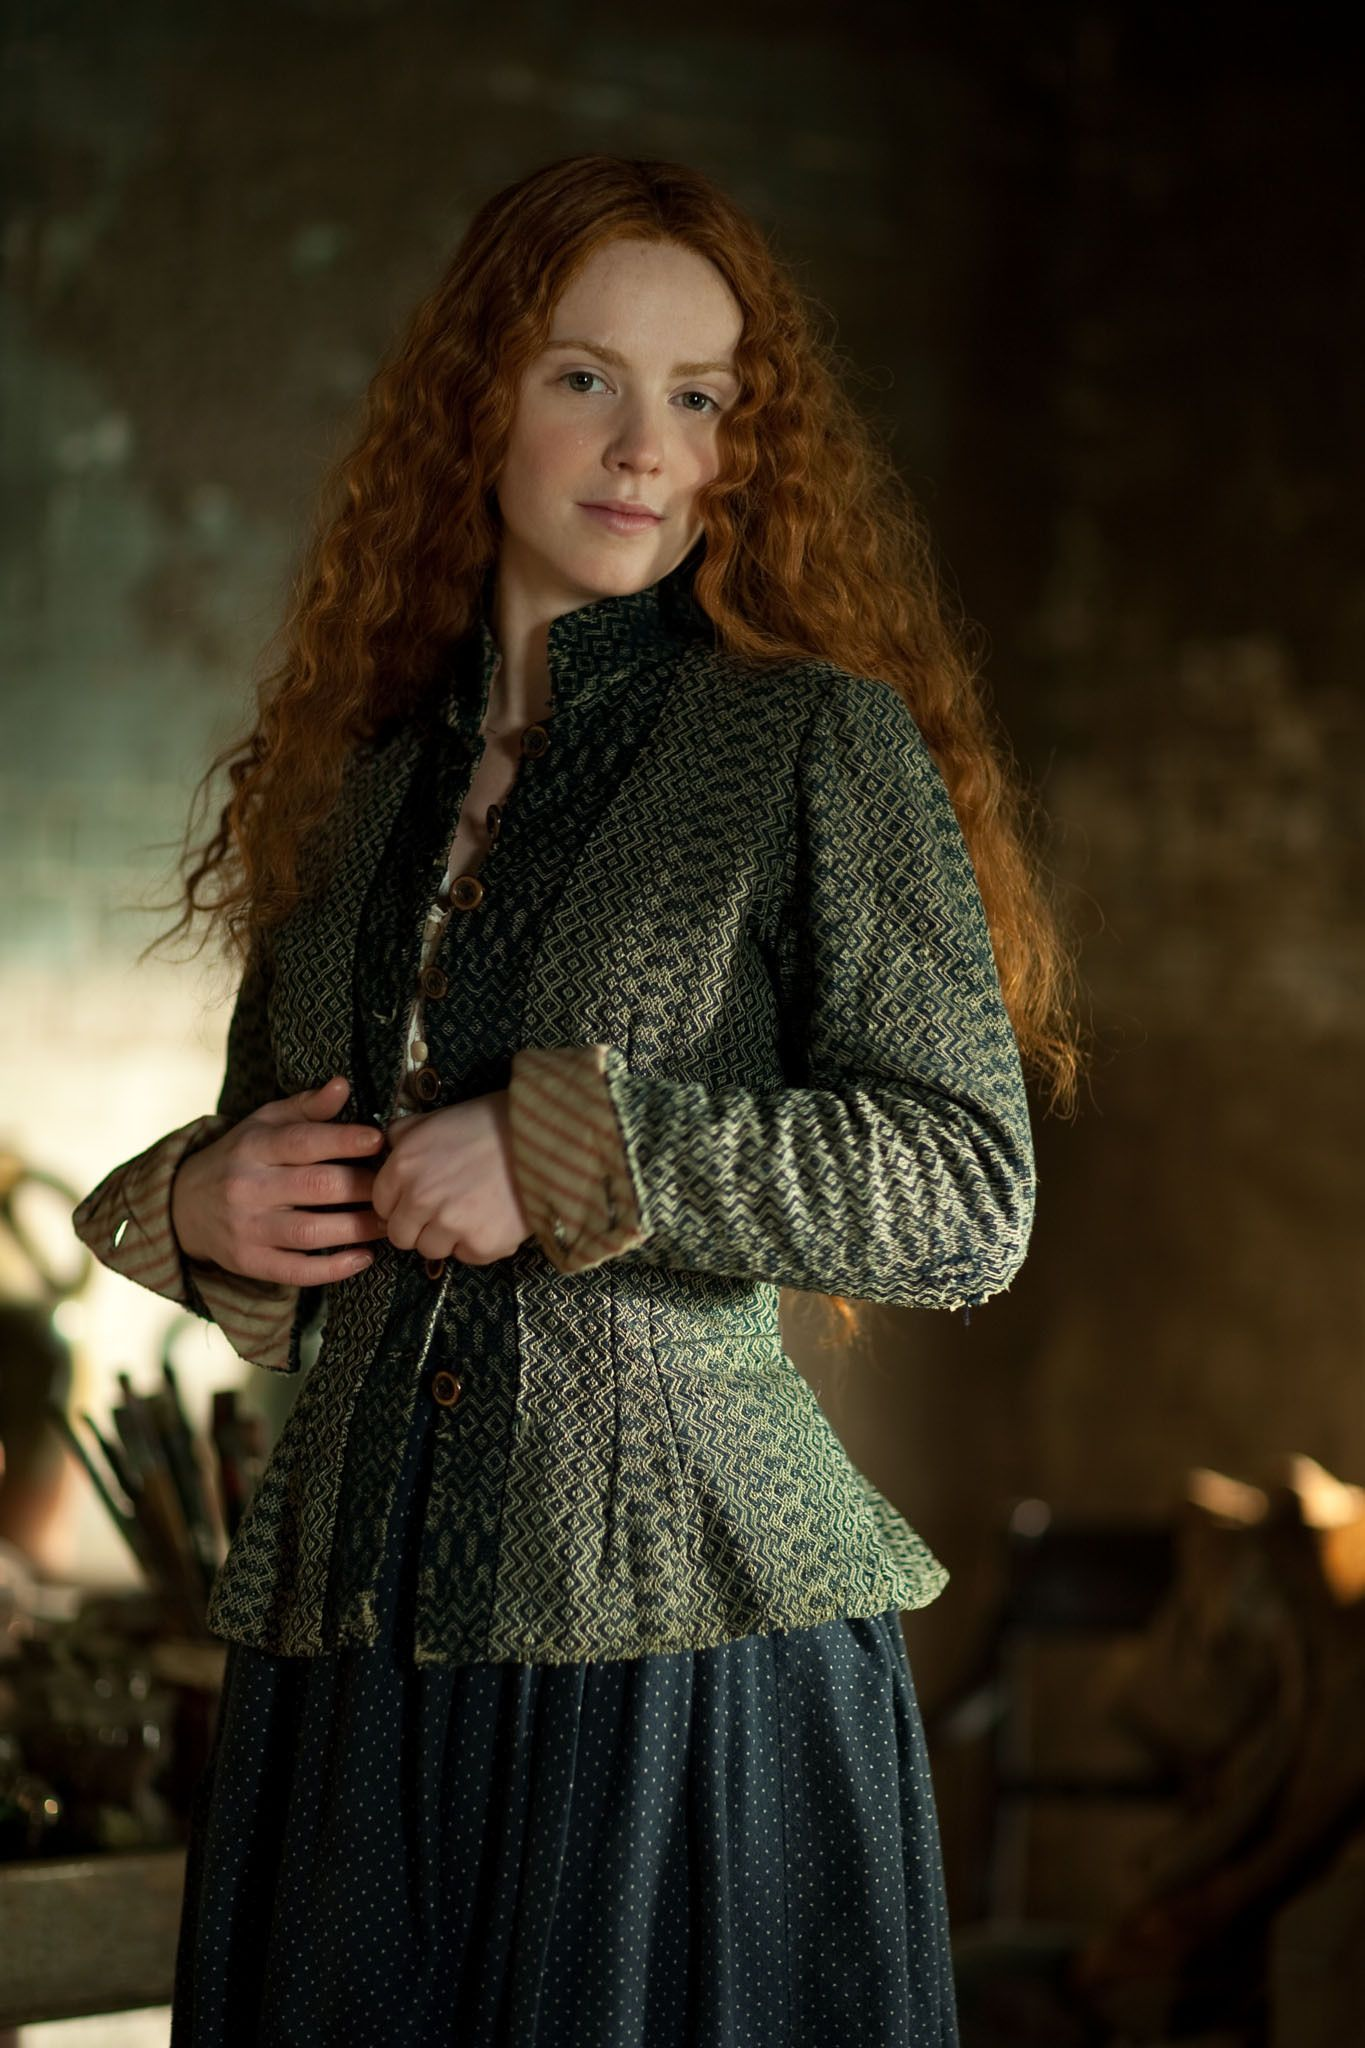 Celebrites Amy Manson naked (21 foto and video), Topless, Sideboobs, Feet, cleavage 2017